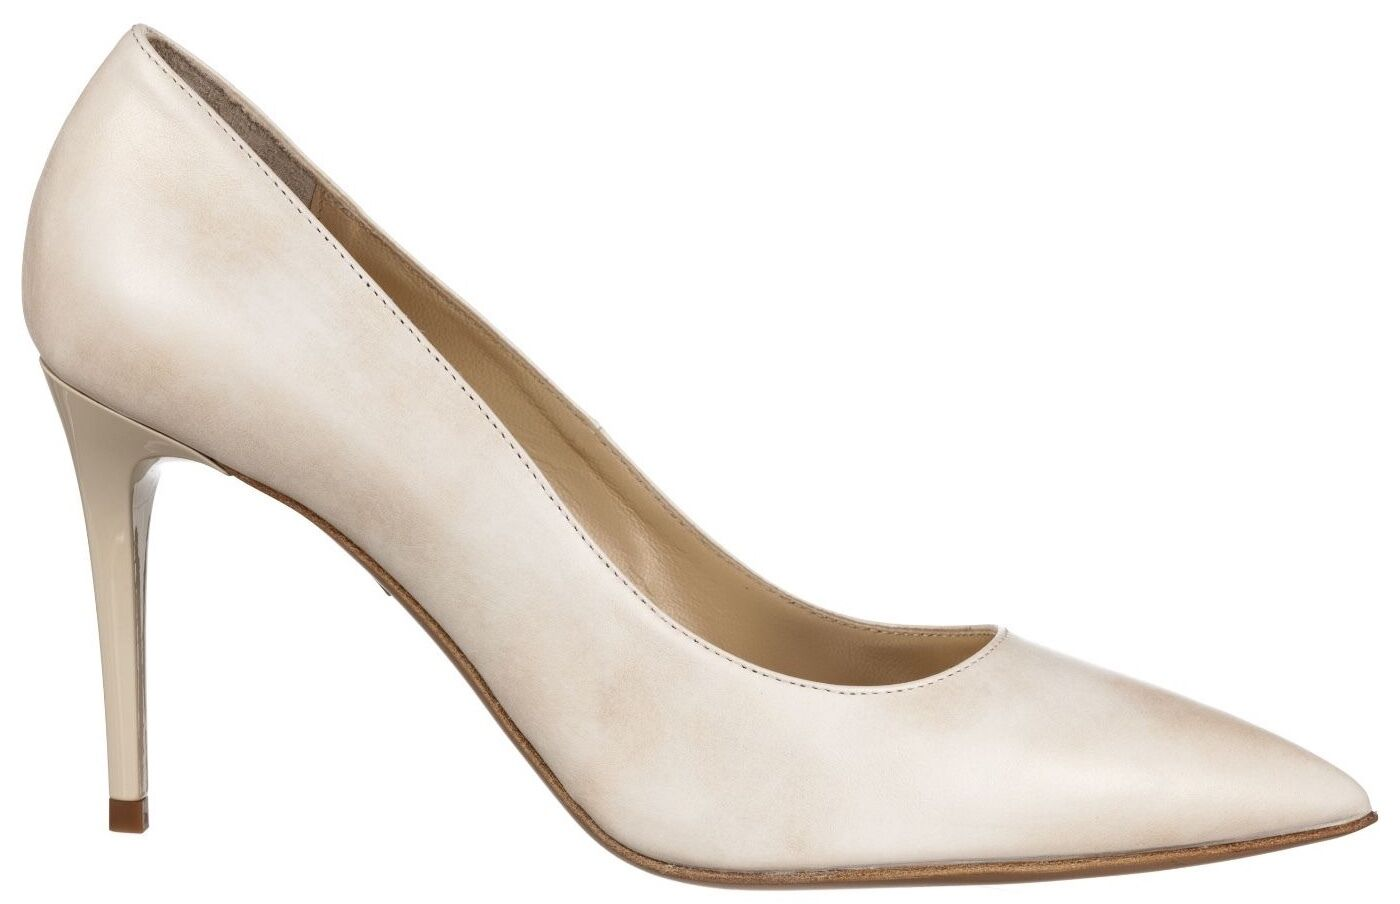 MORI MADE IN ITALY POINTY HIGH HEEL PUMPS DECOLTE SCHUHE LEATHER WHITE BIANCO 45